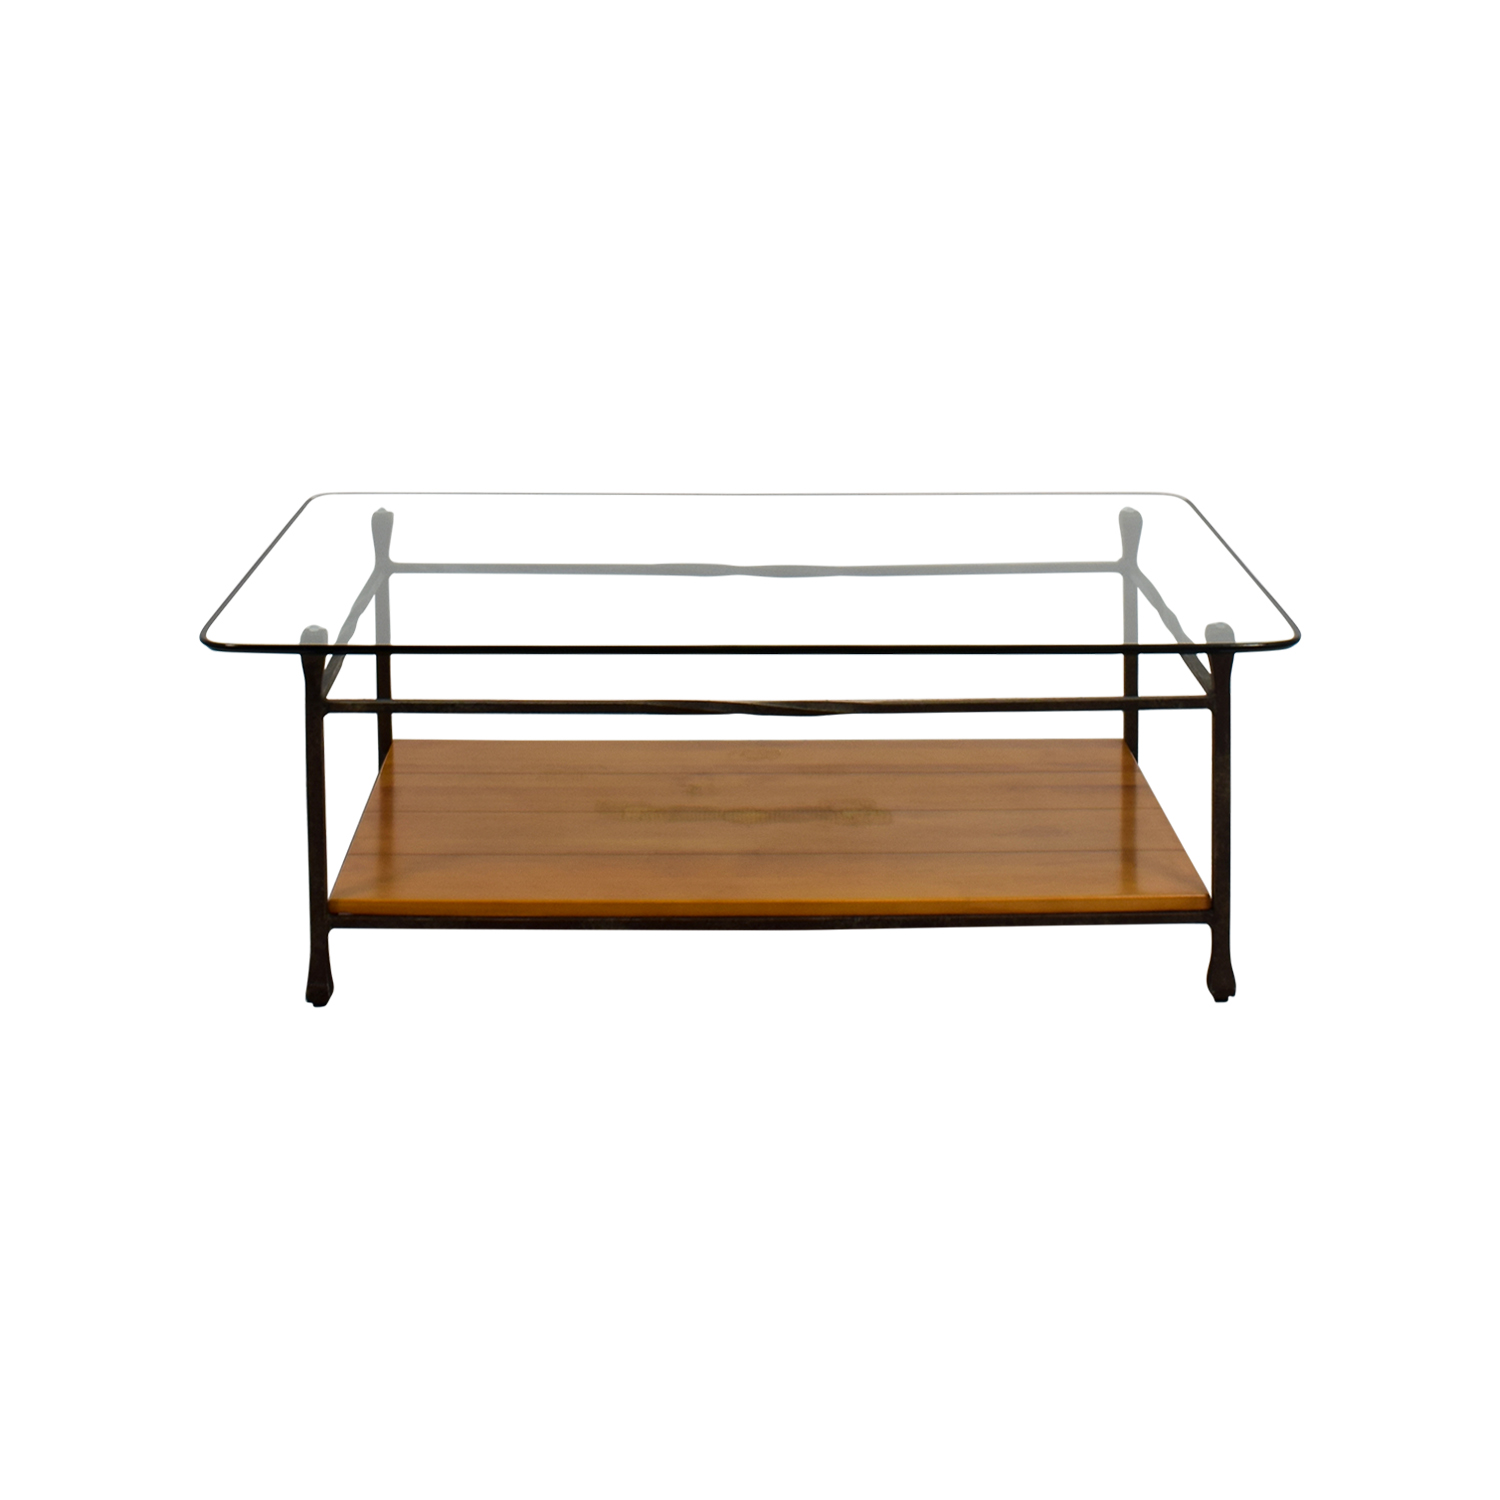 off ethan allen glass wood coffee table tables and end cappuccino nightstand farmhouse cottage furniture spray paint frame can you ott trays home decor laura ashley bedspread sets